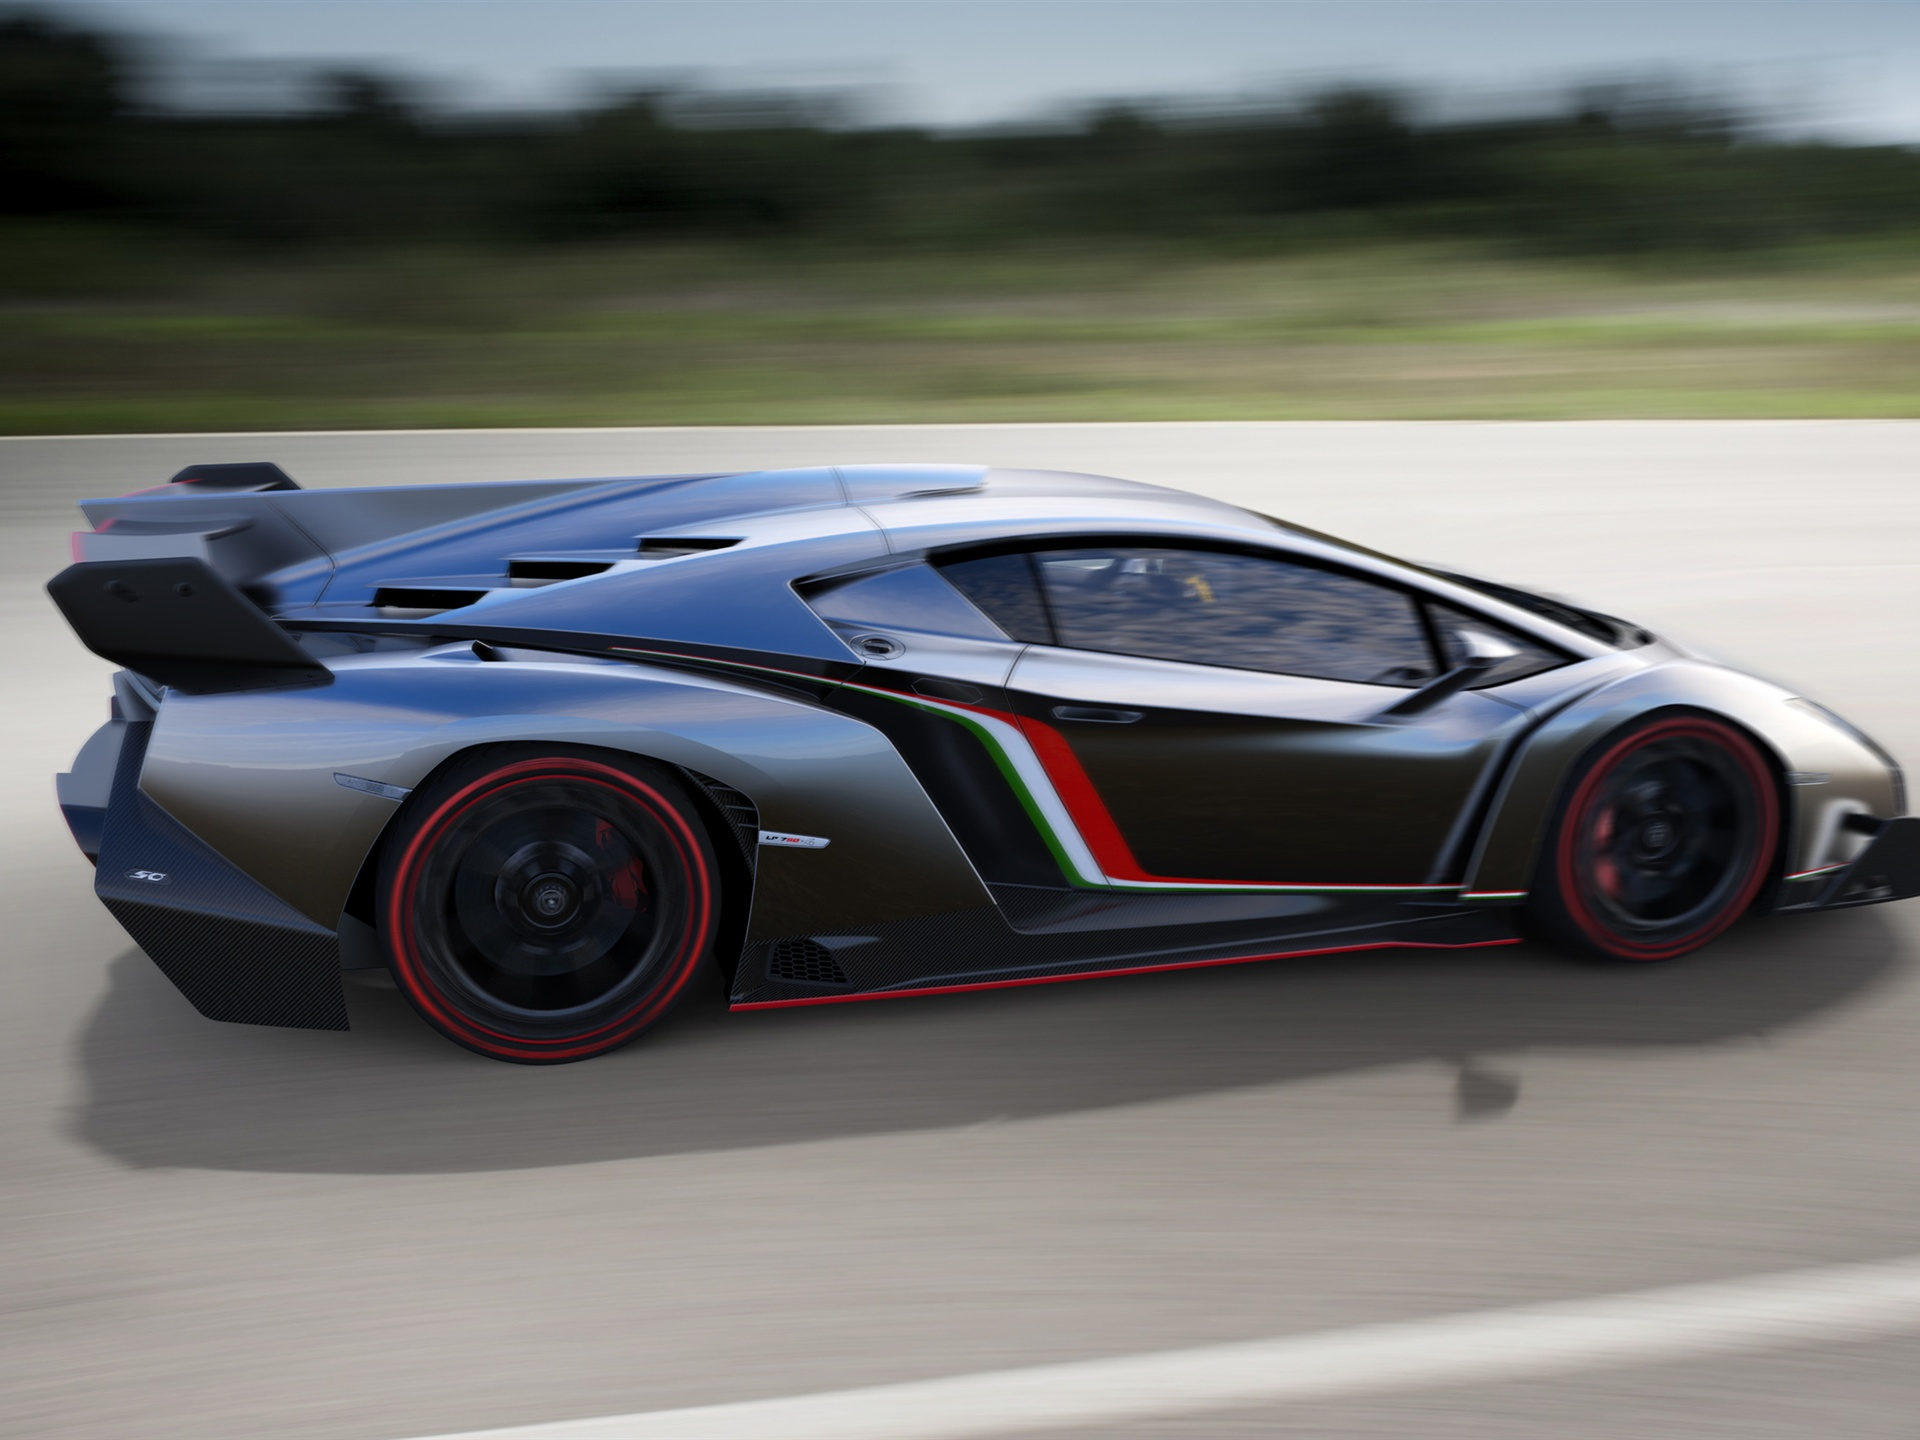 2013 lamborghini veneno very cool car wallpaper 1600x1200 Car Pictures 1920x1440